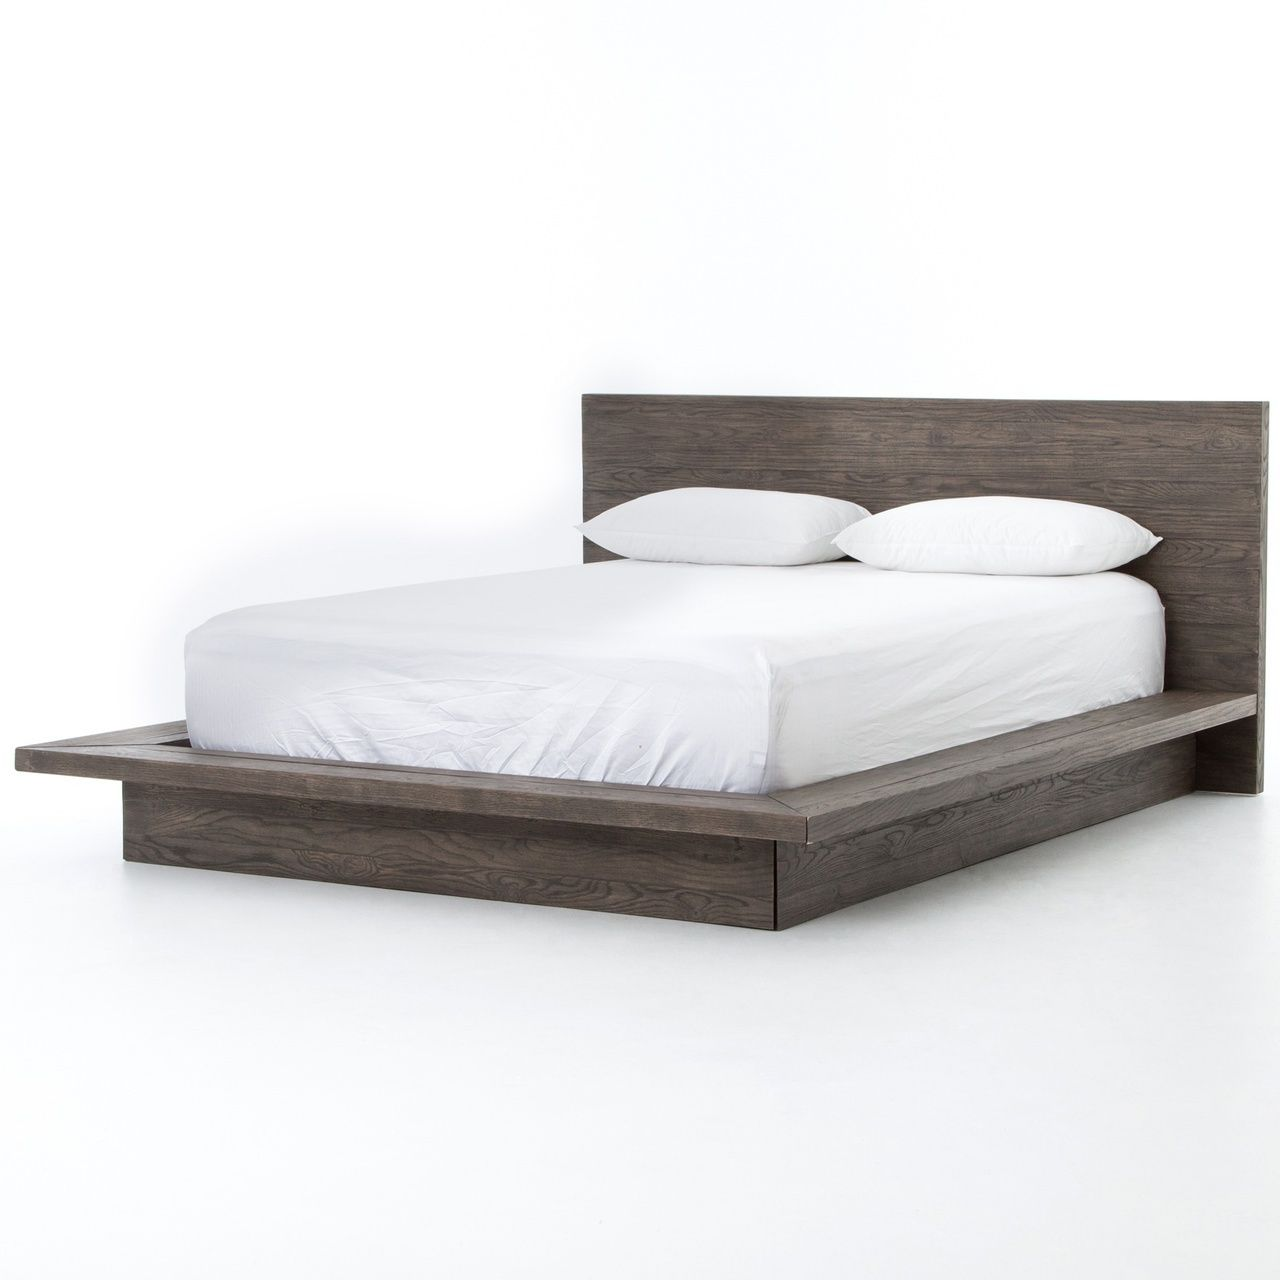 Https Www Zinhome Com Stria King Size Low Japanese Platform Bed